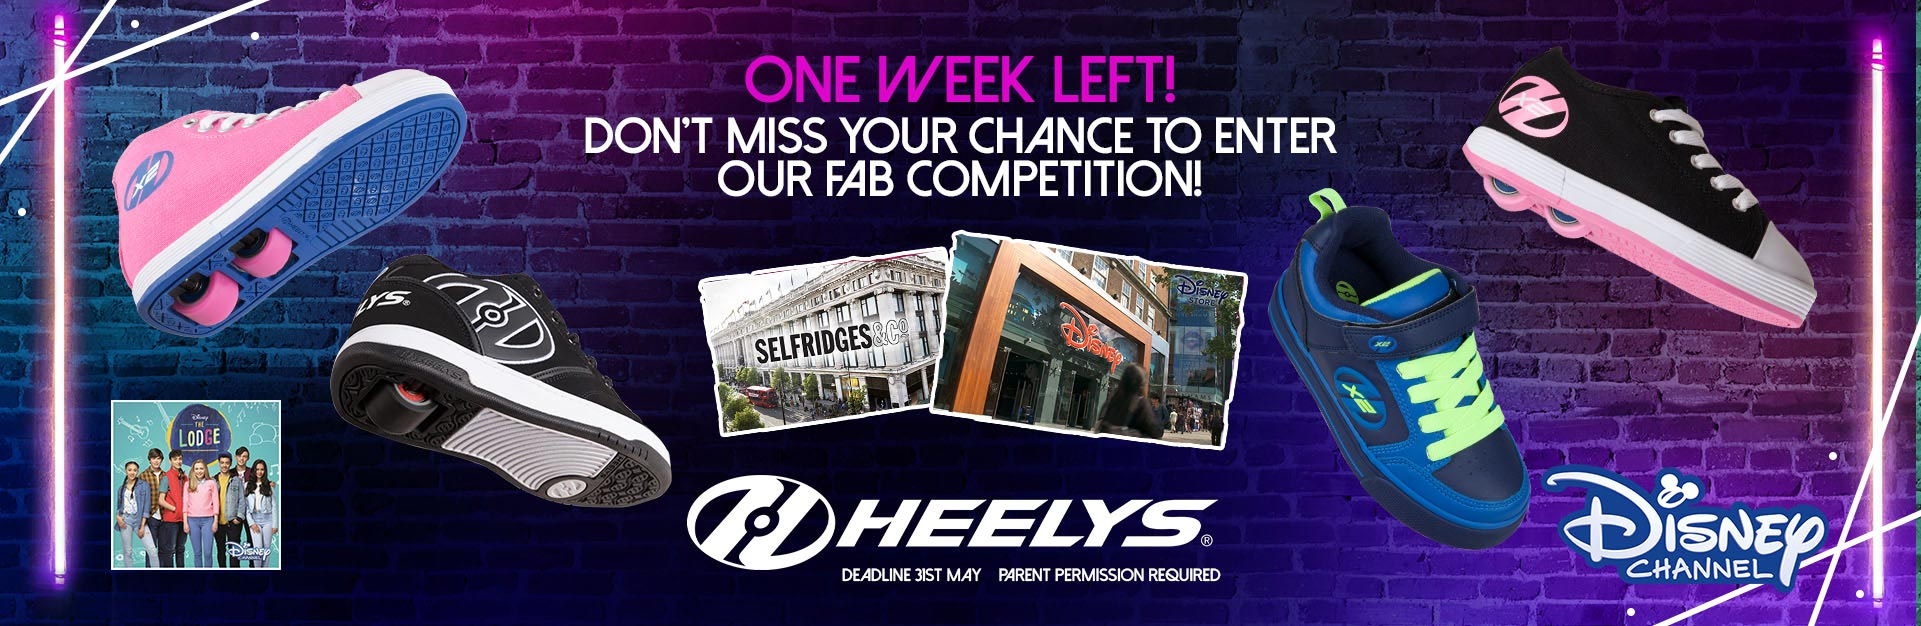 One week left! Don't miss your chance to enter our fab competition.